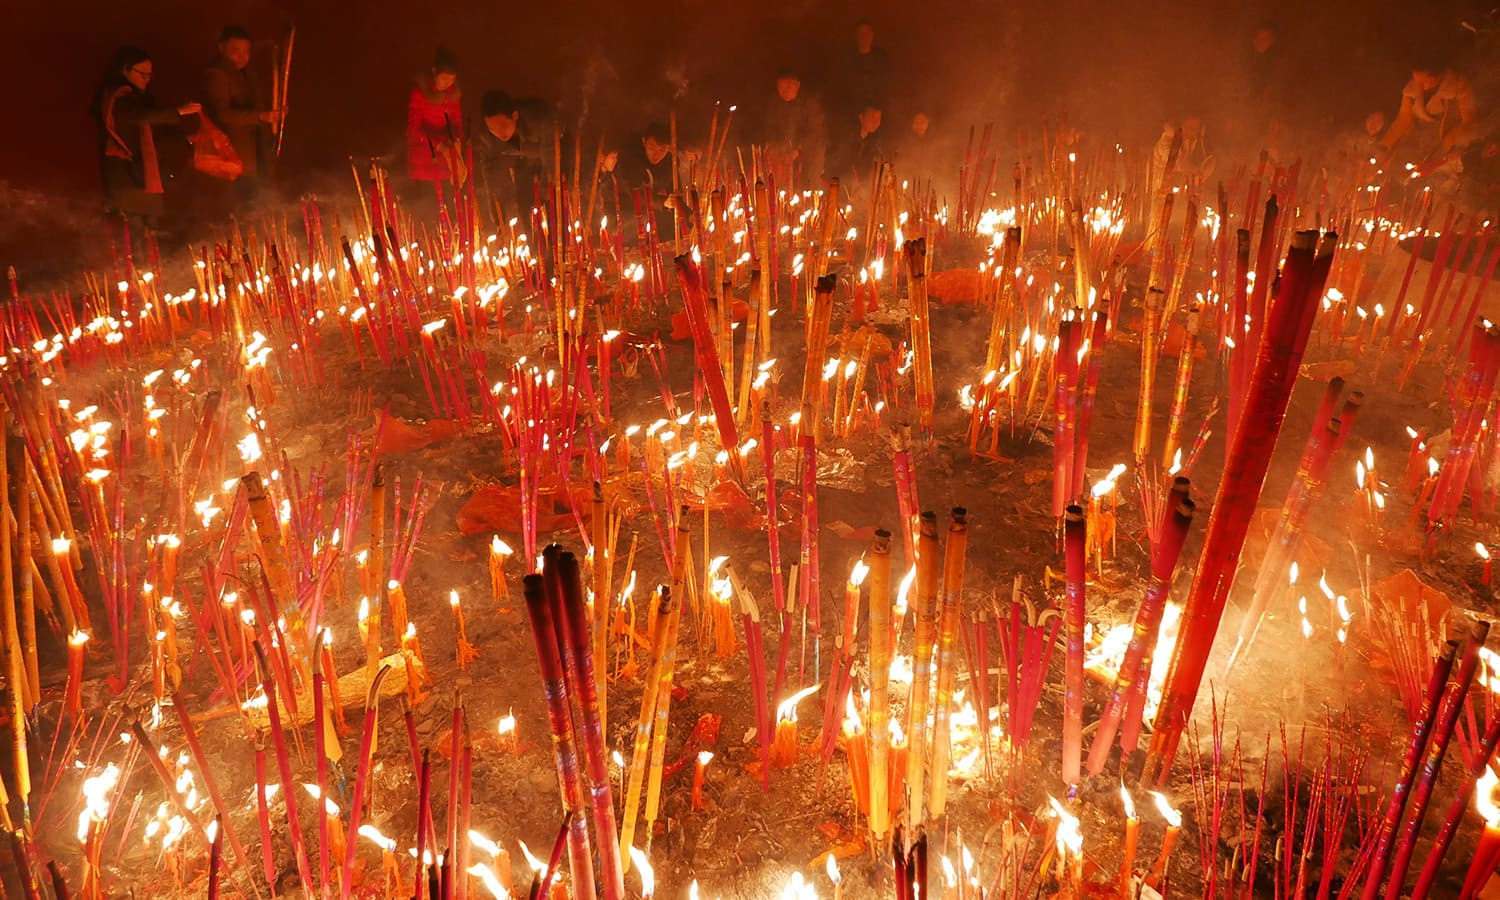 People burn incense as they pray for good fortune on the first day of the Chinese Lunar New Year. ─ Reuters